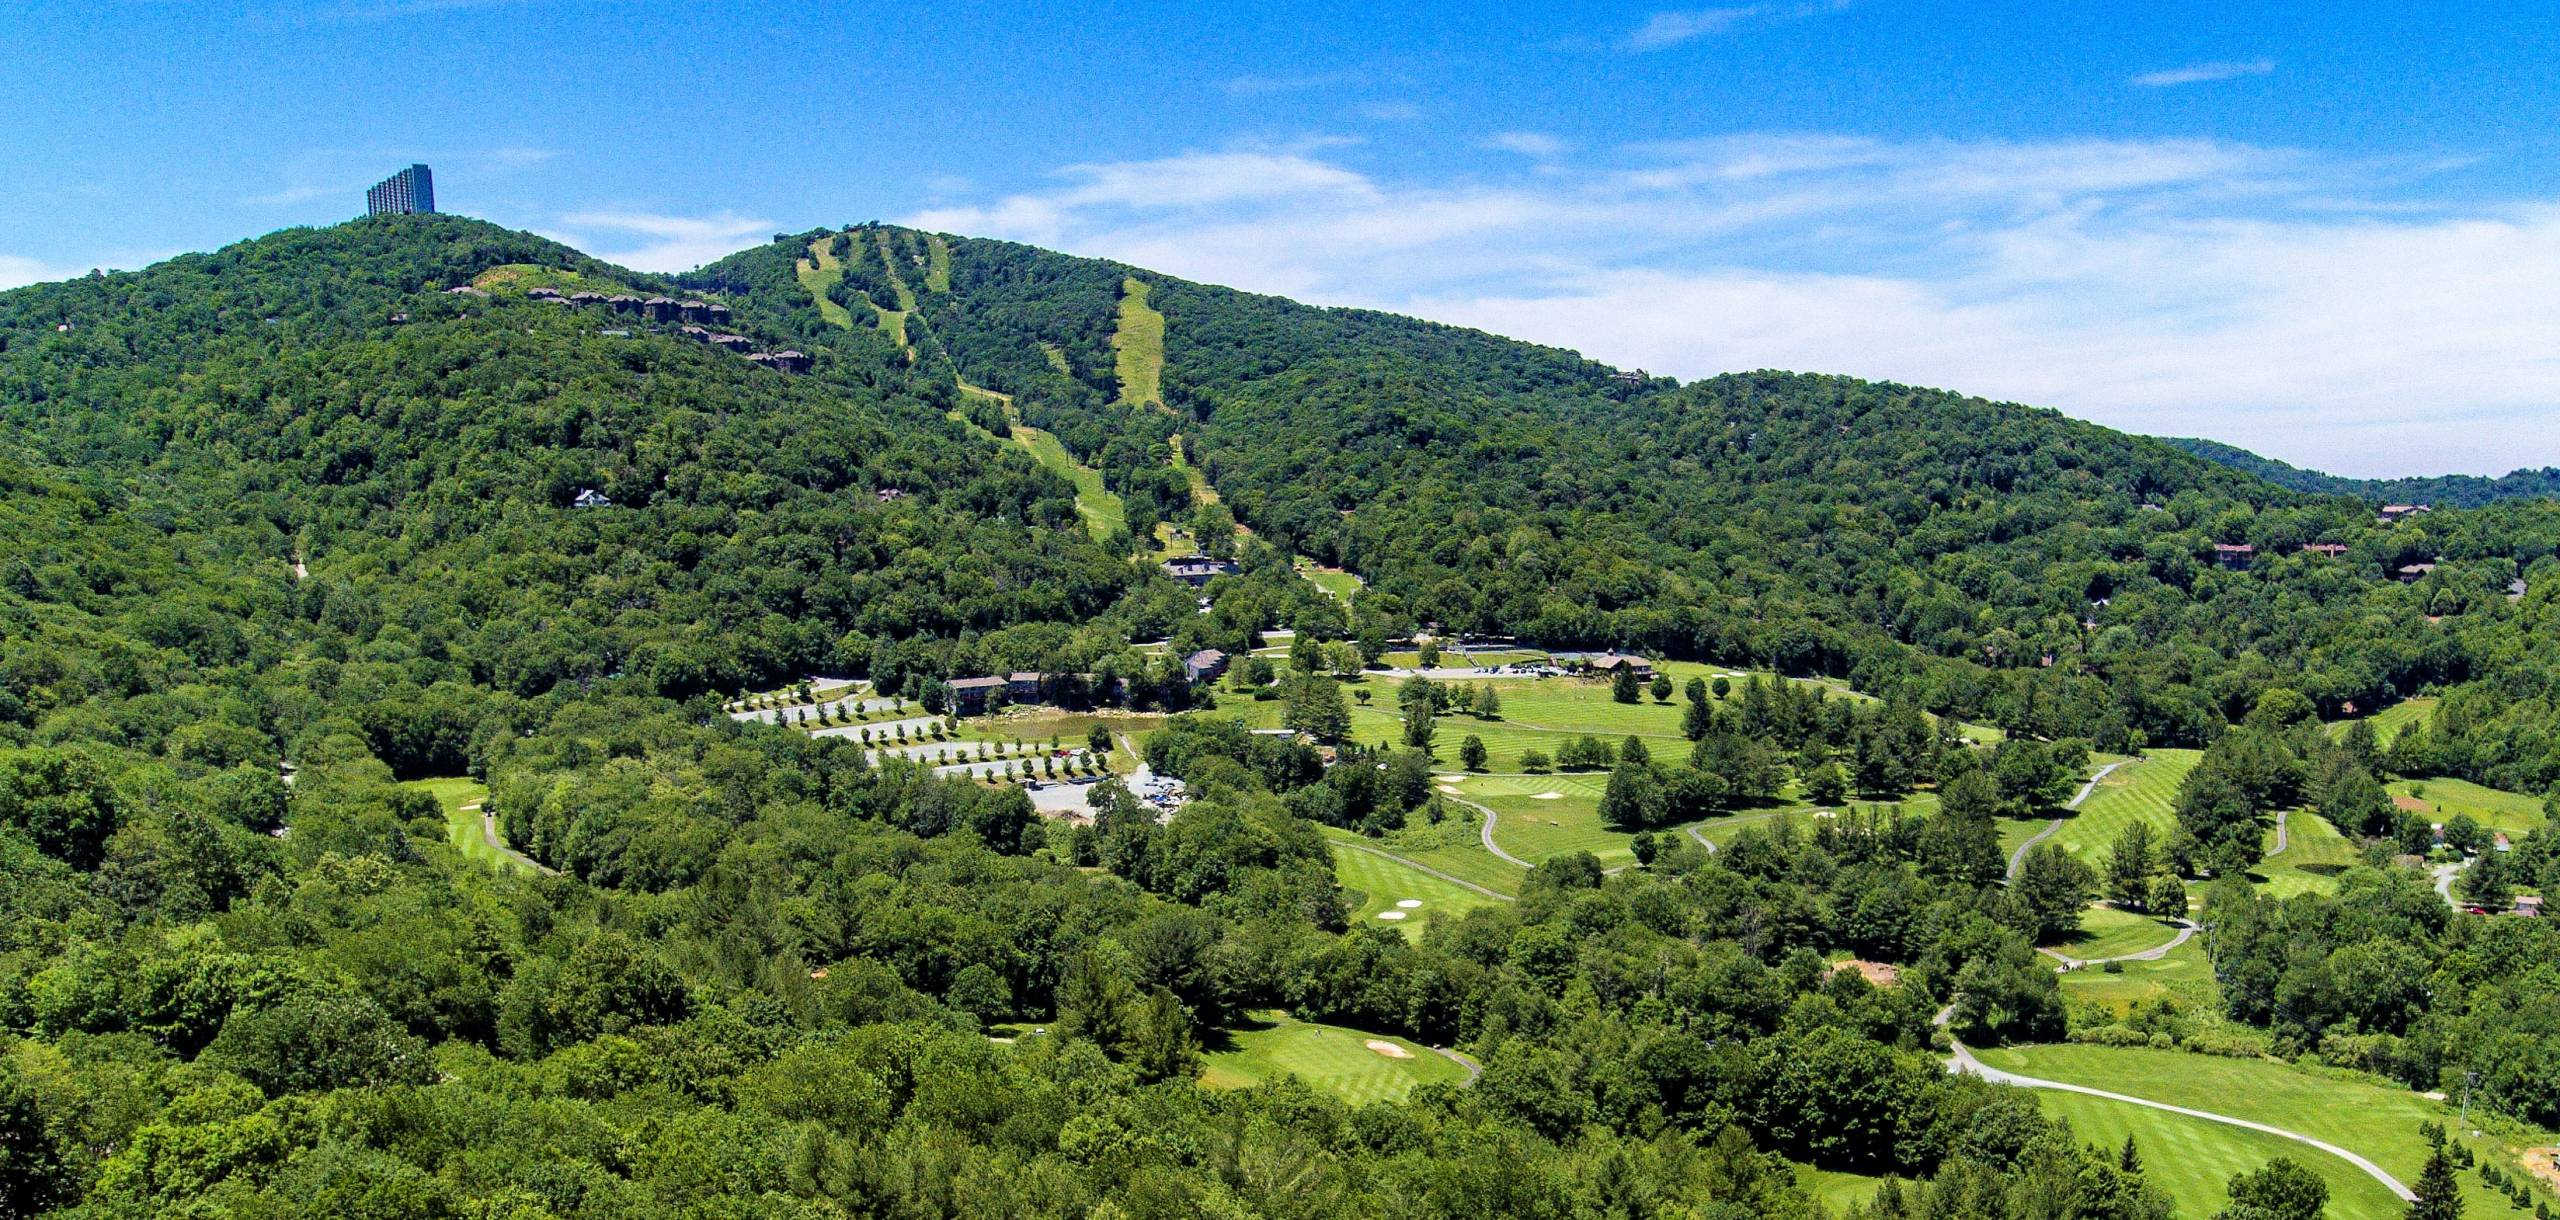 SUGAR MOUNTAIN, NC......Its Just sweeter up here!